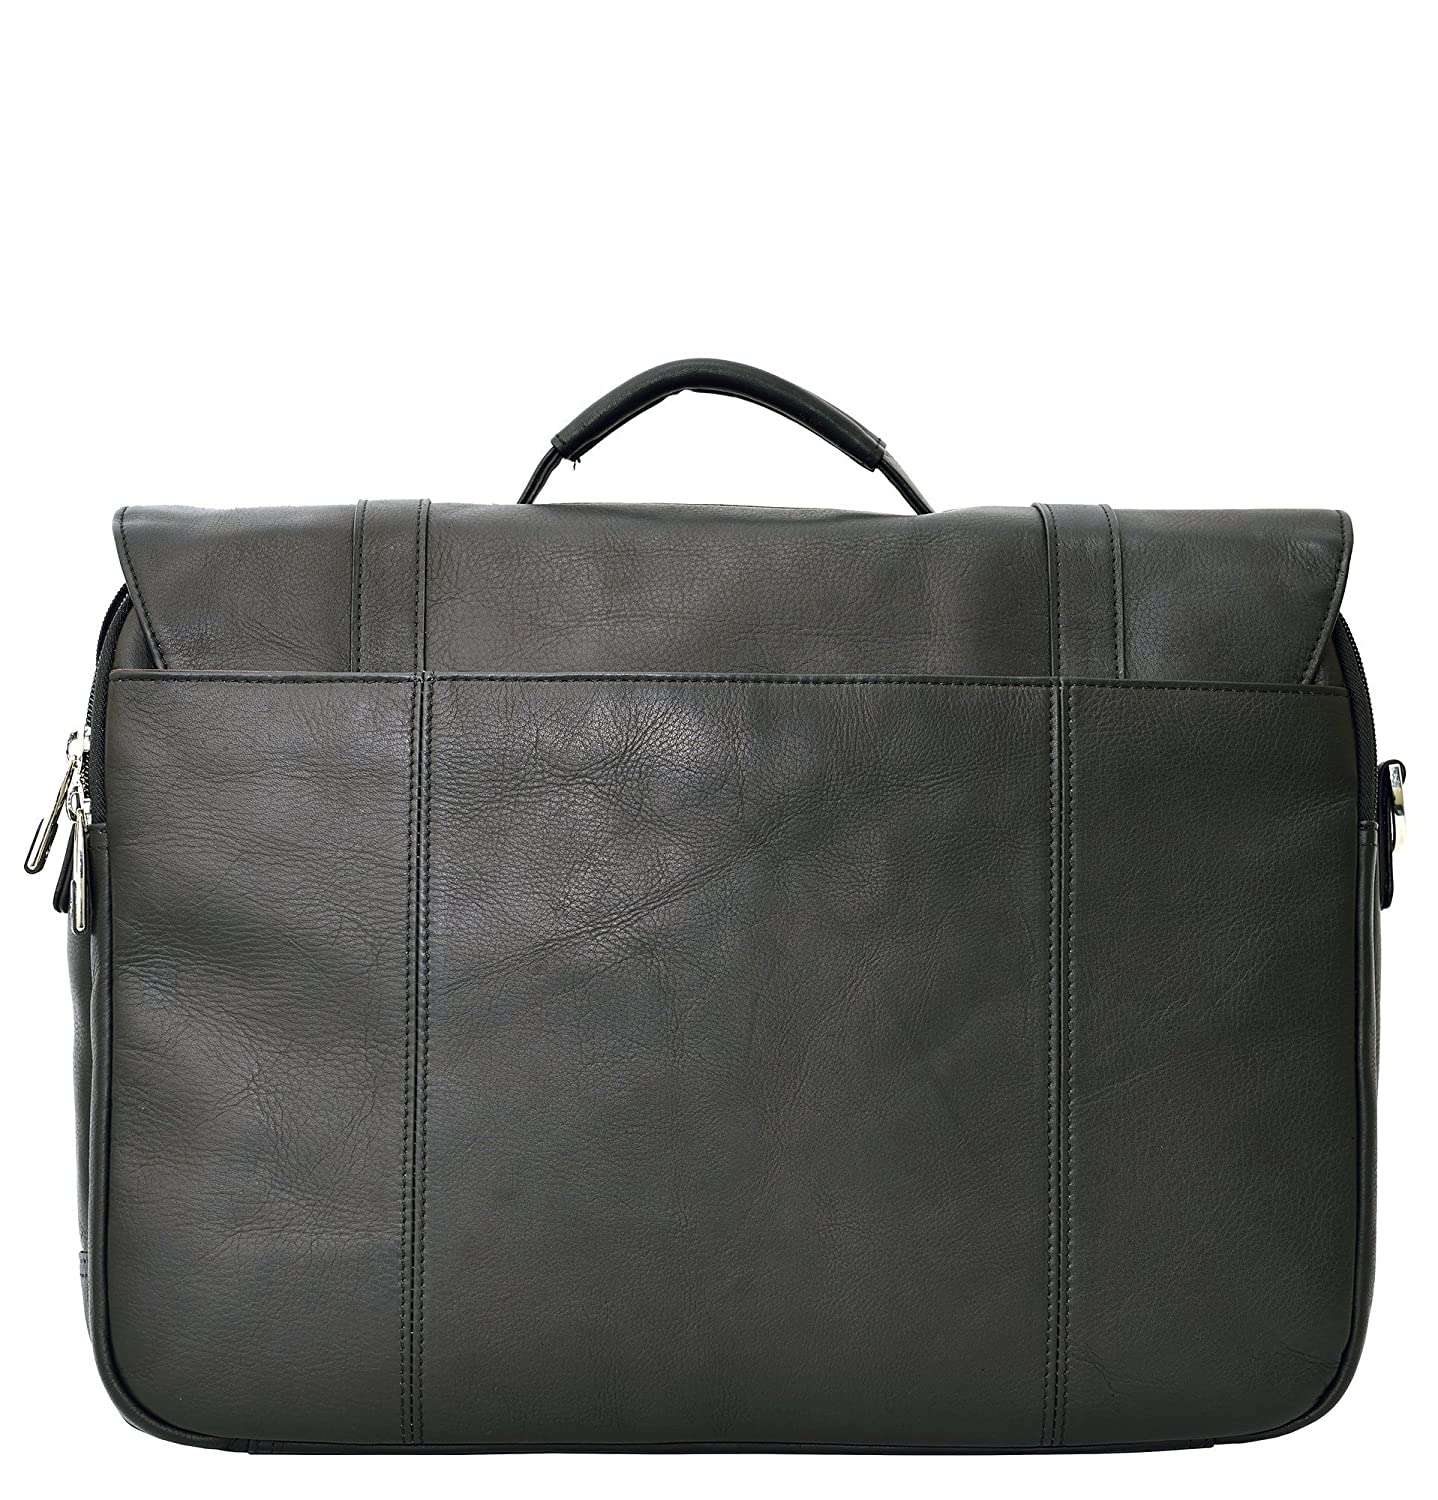 5d49a2ae006 Amazon.com  Samsonite Colombian Leather Flapover Case (Black Chrome)   Office Products